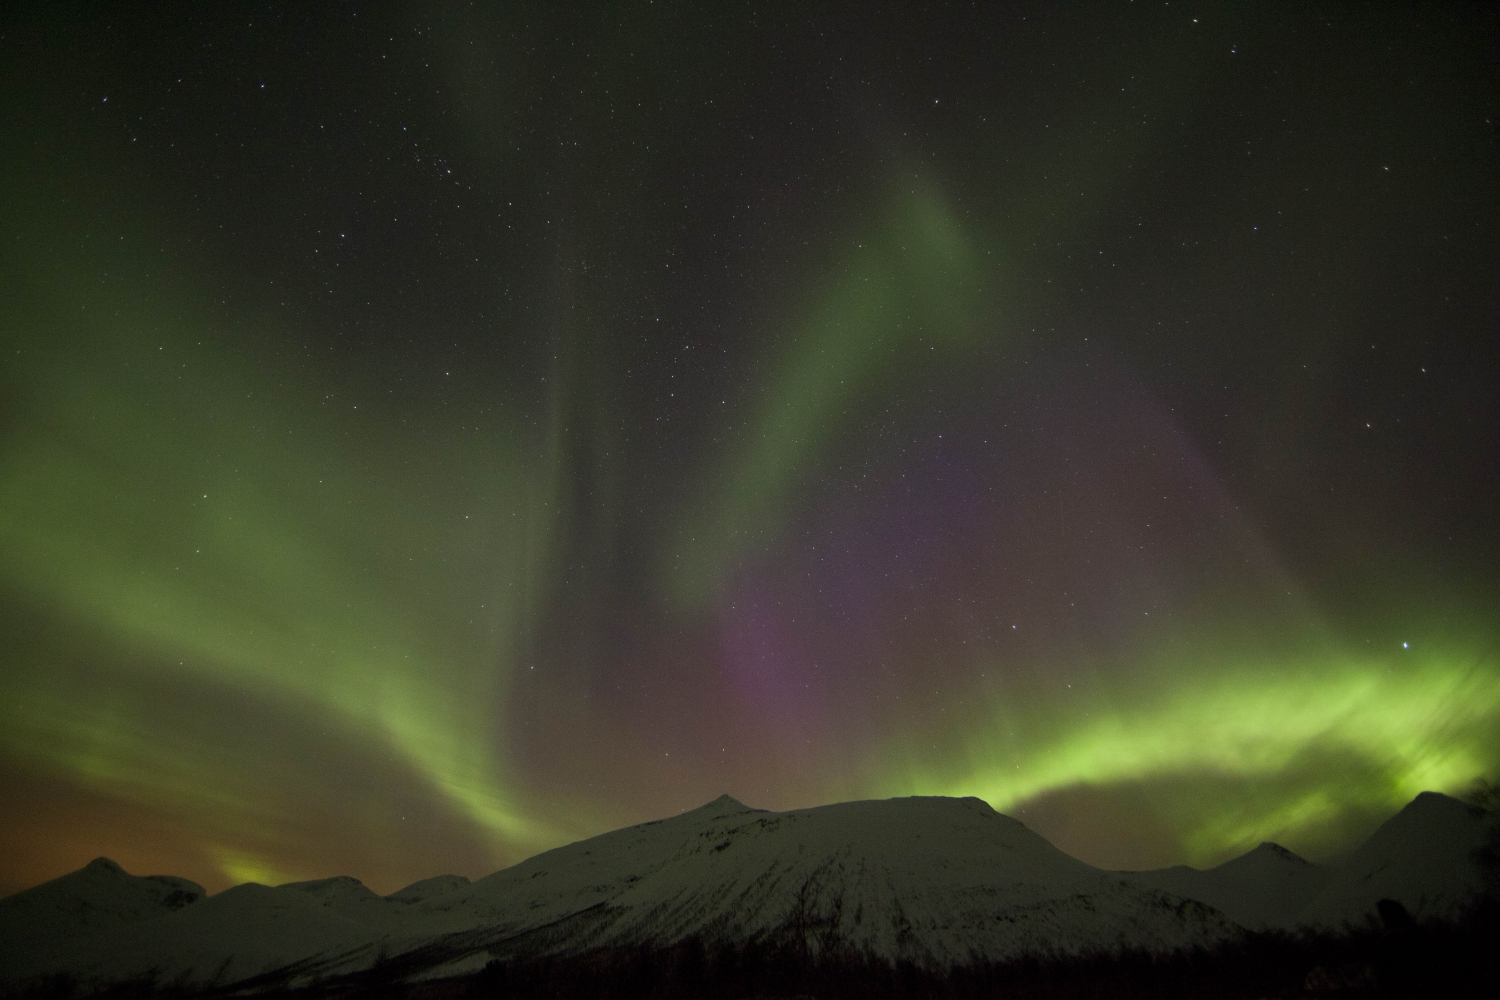 Northern lights above mountains